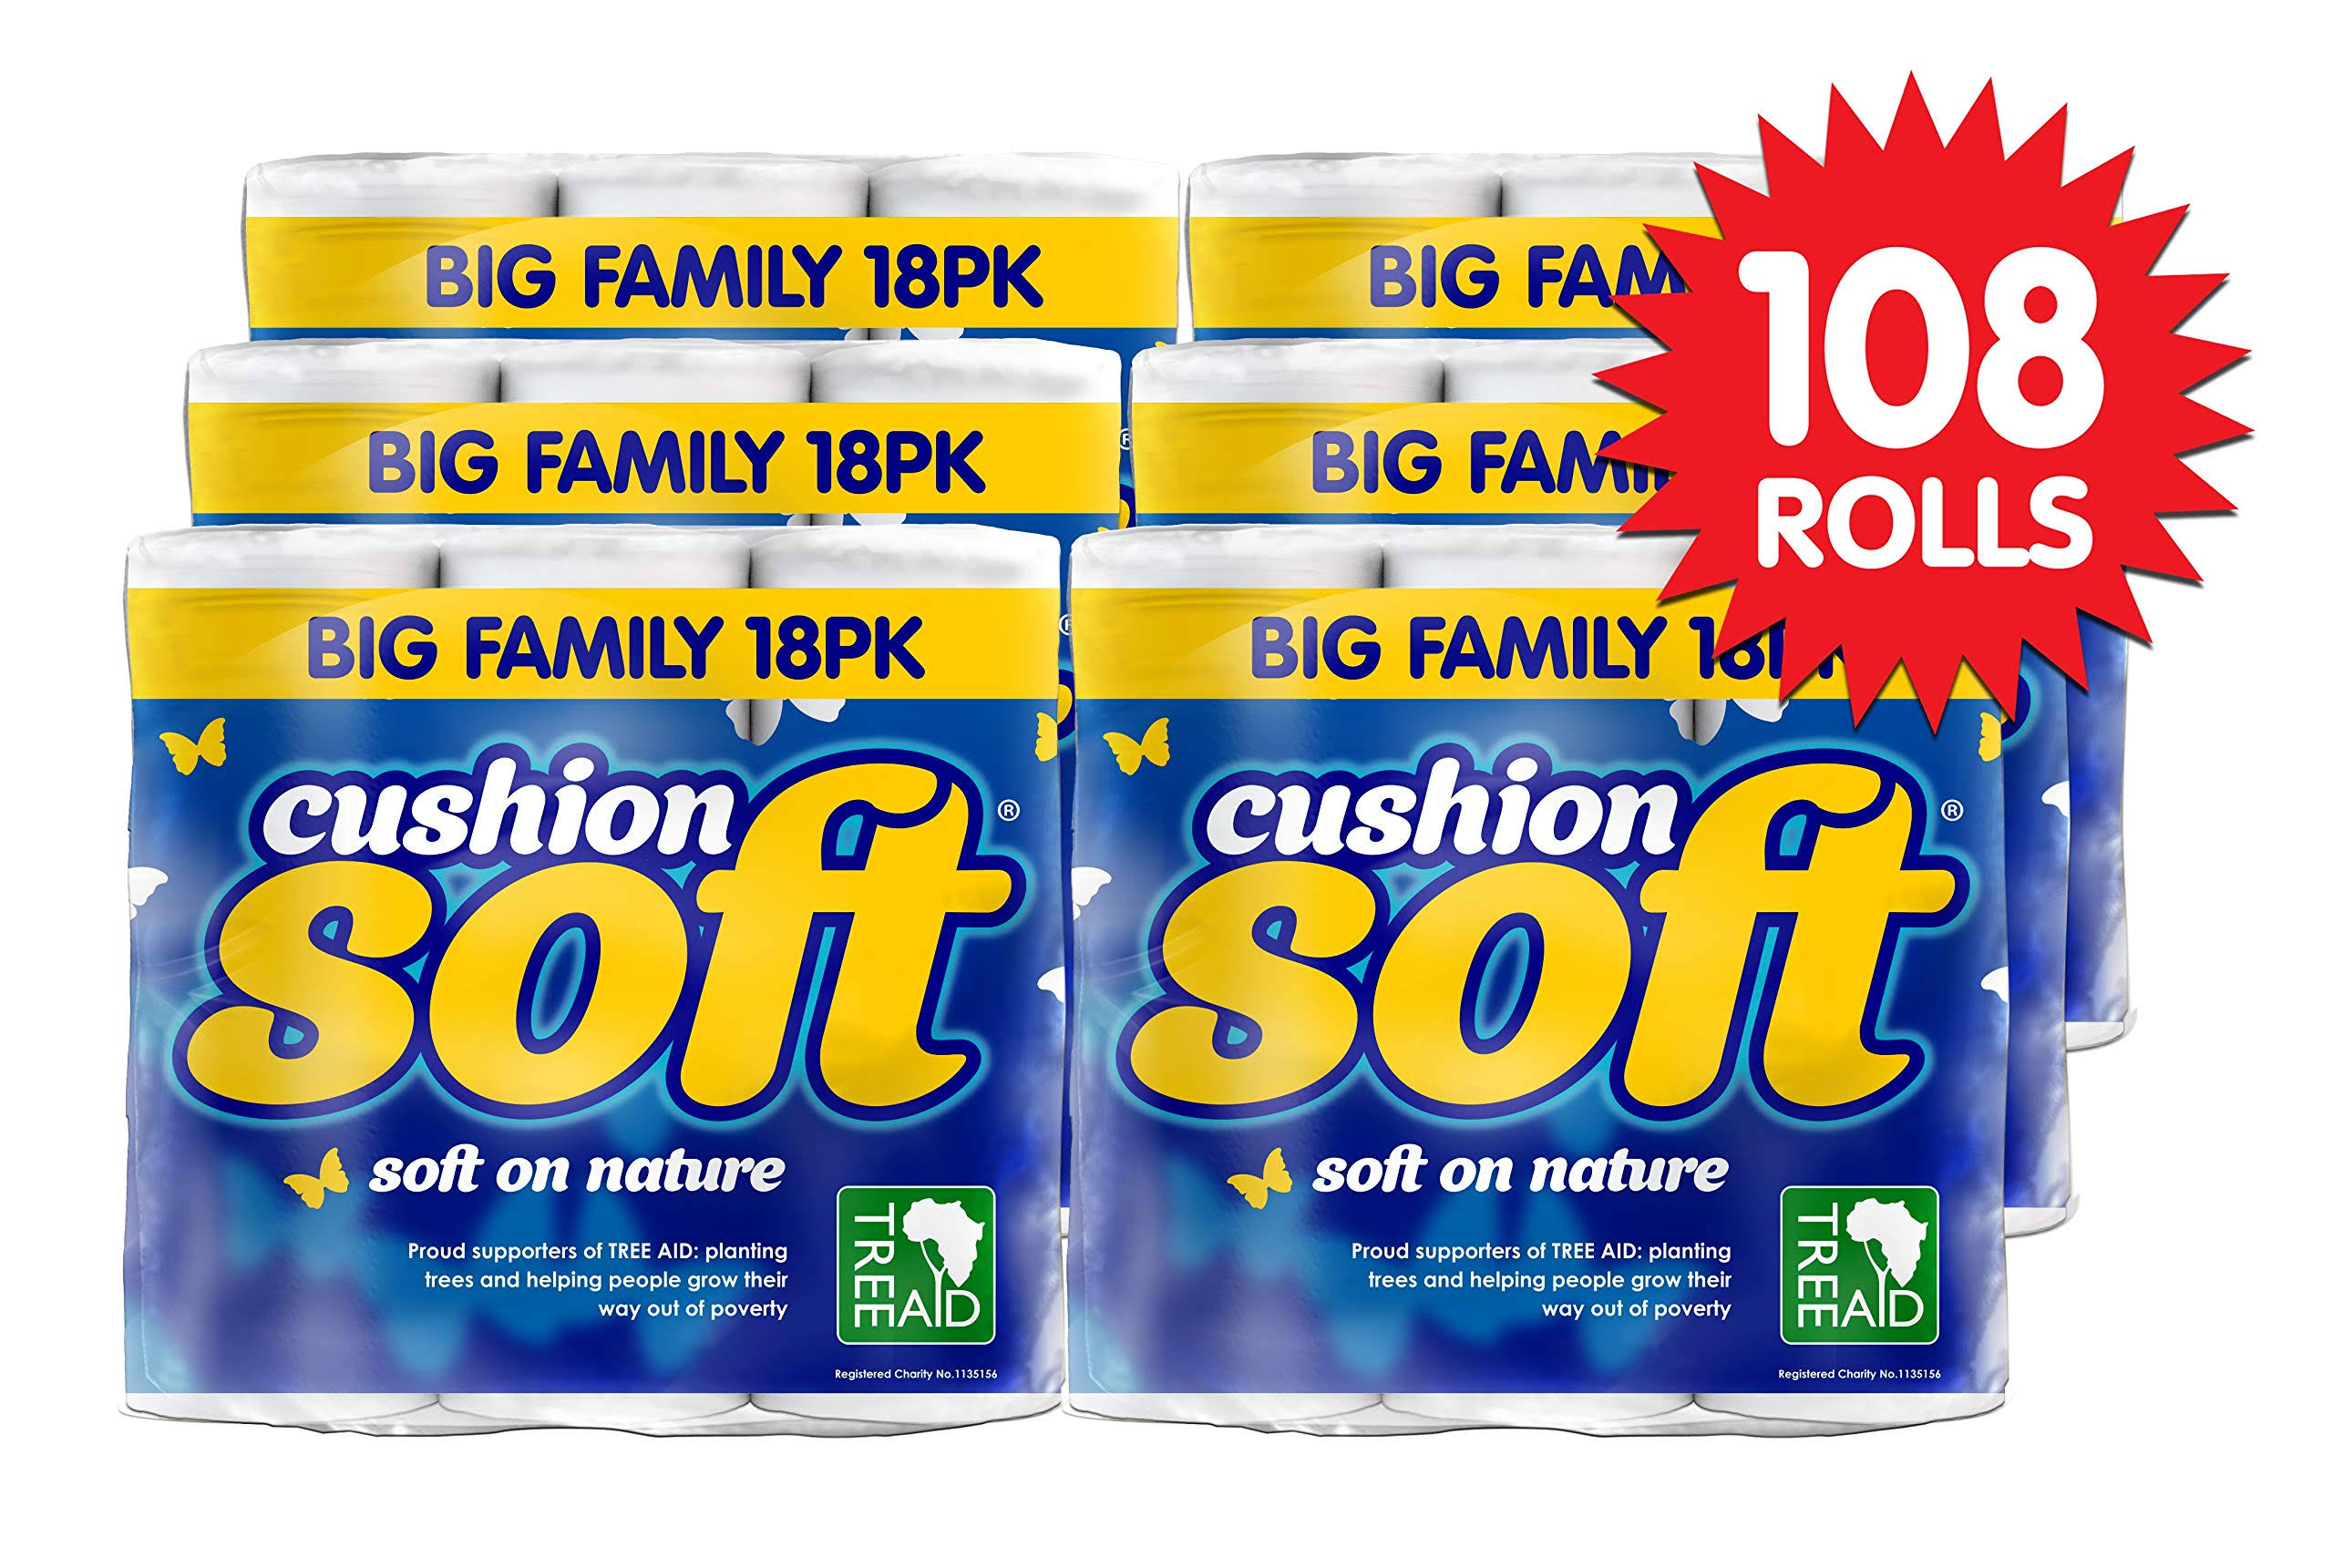 Cushion Soft Toilet Tissue Rolls 54pk